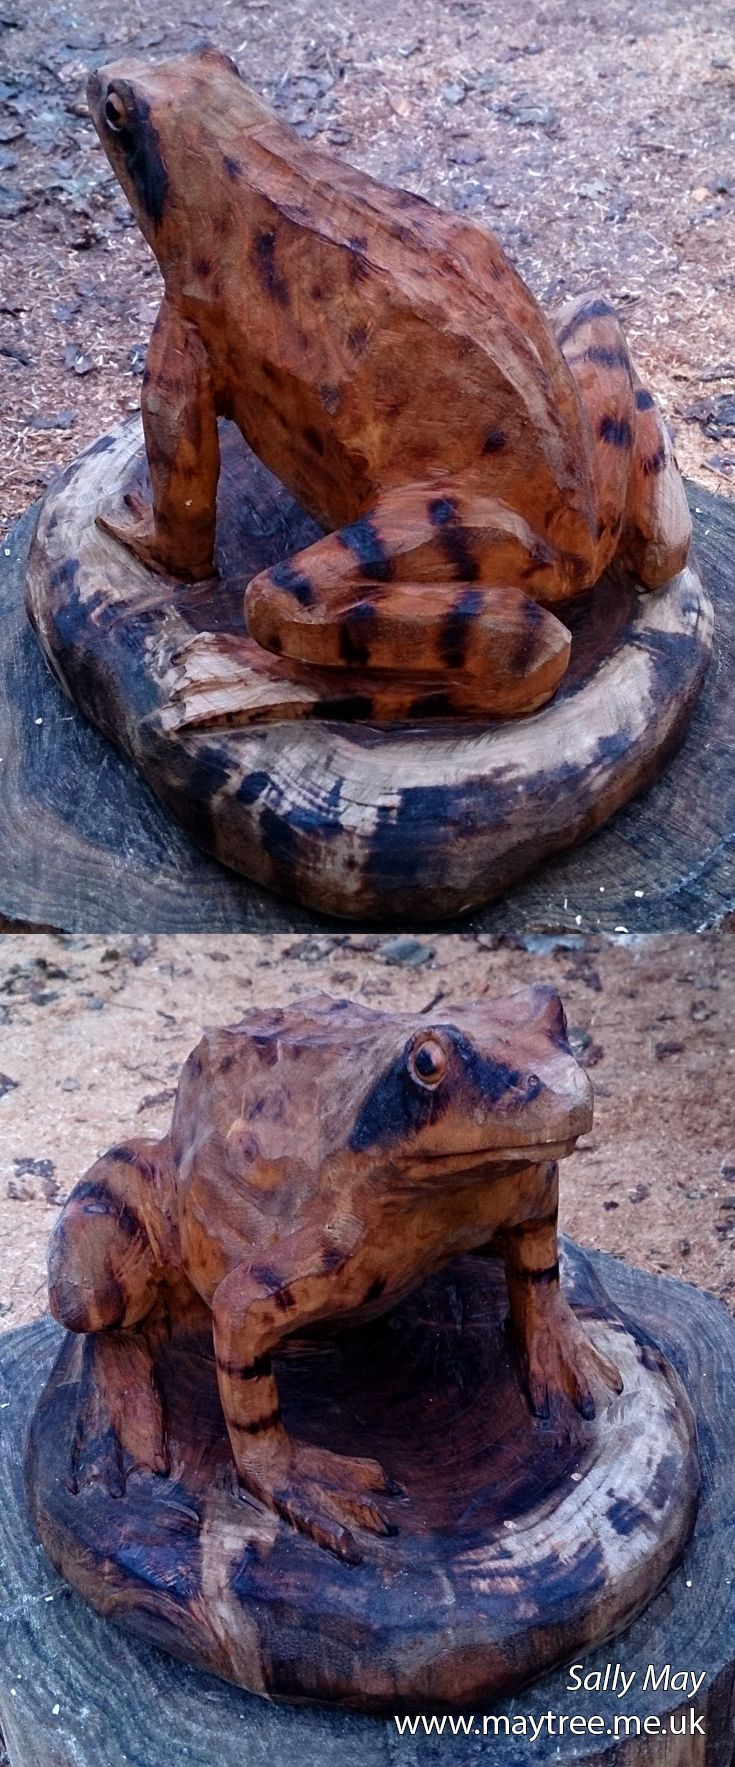 A little speckled frog chainsaw carving by Sally May